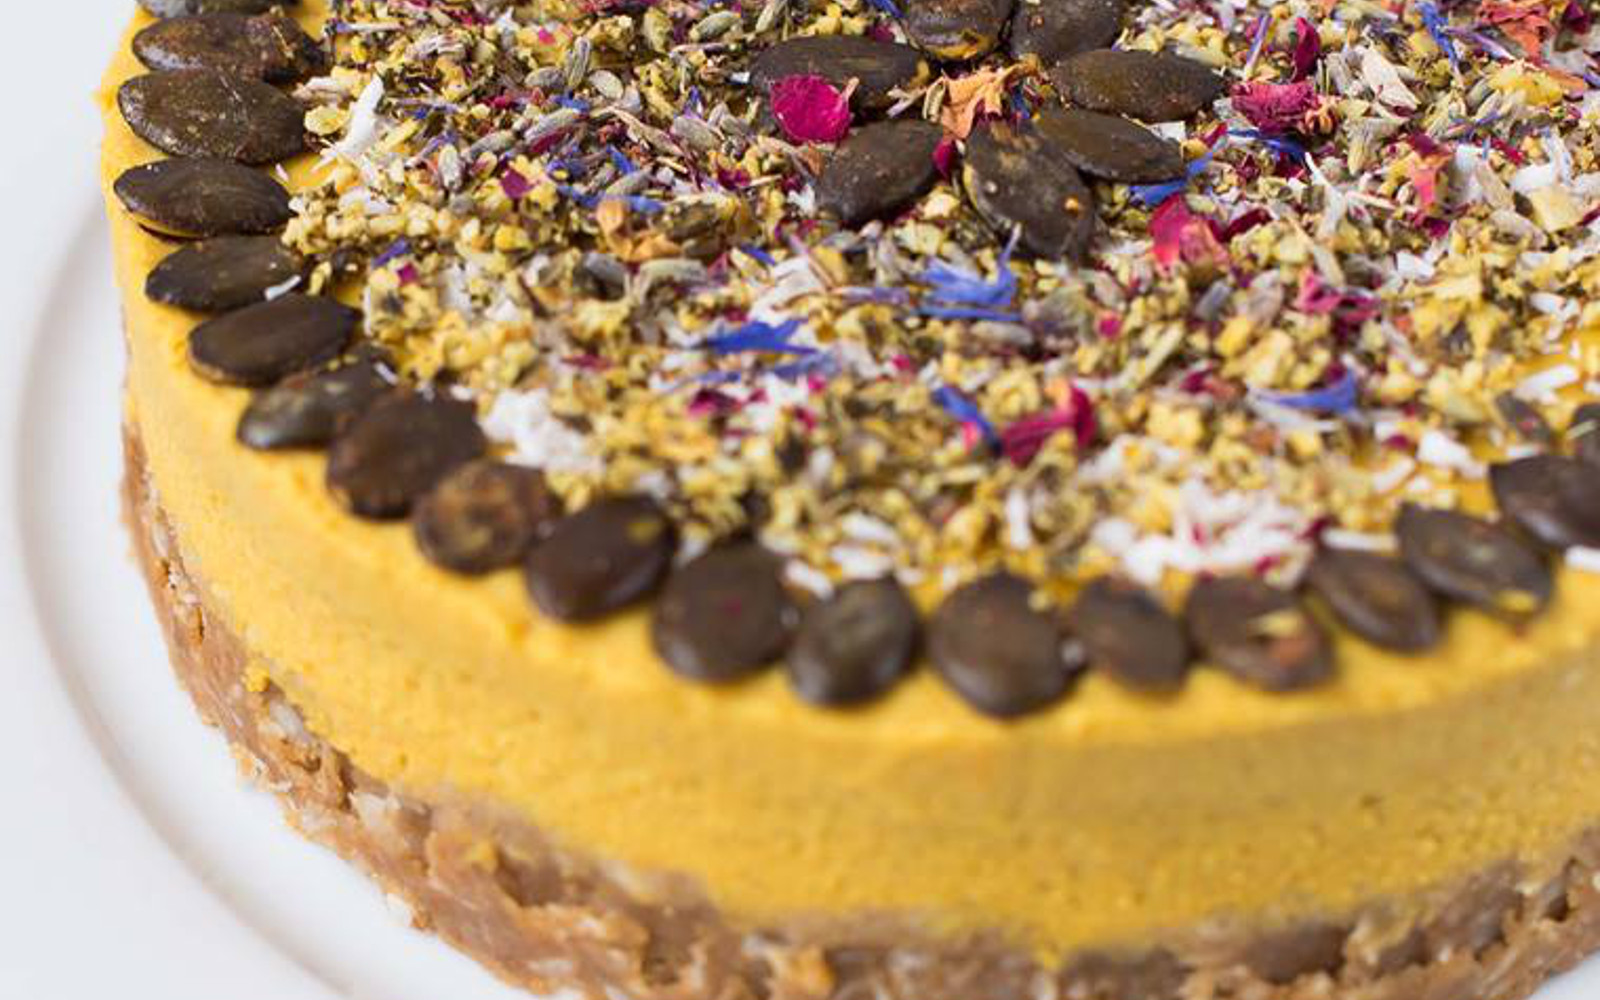 Vegan Golden Milk Pie with sweet potatoes with colorful toppings